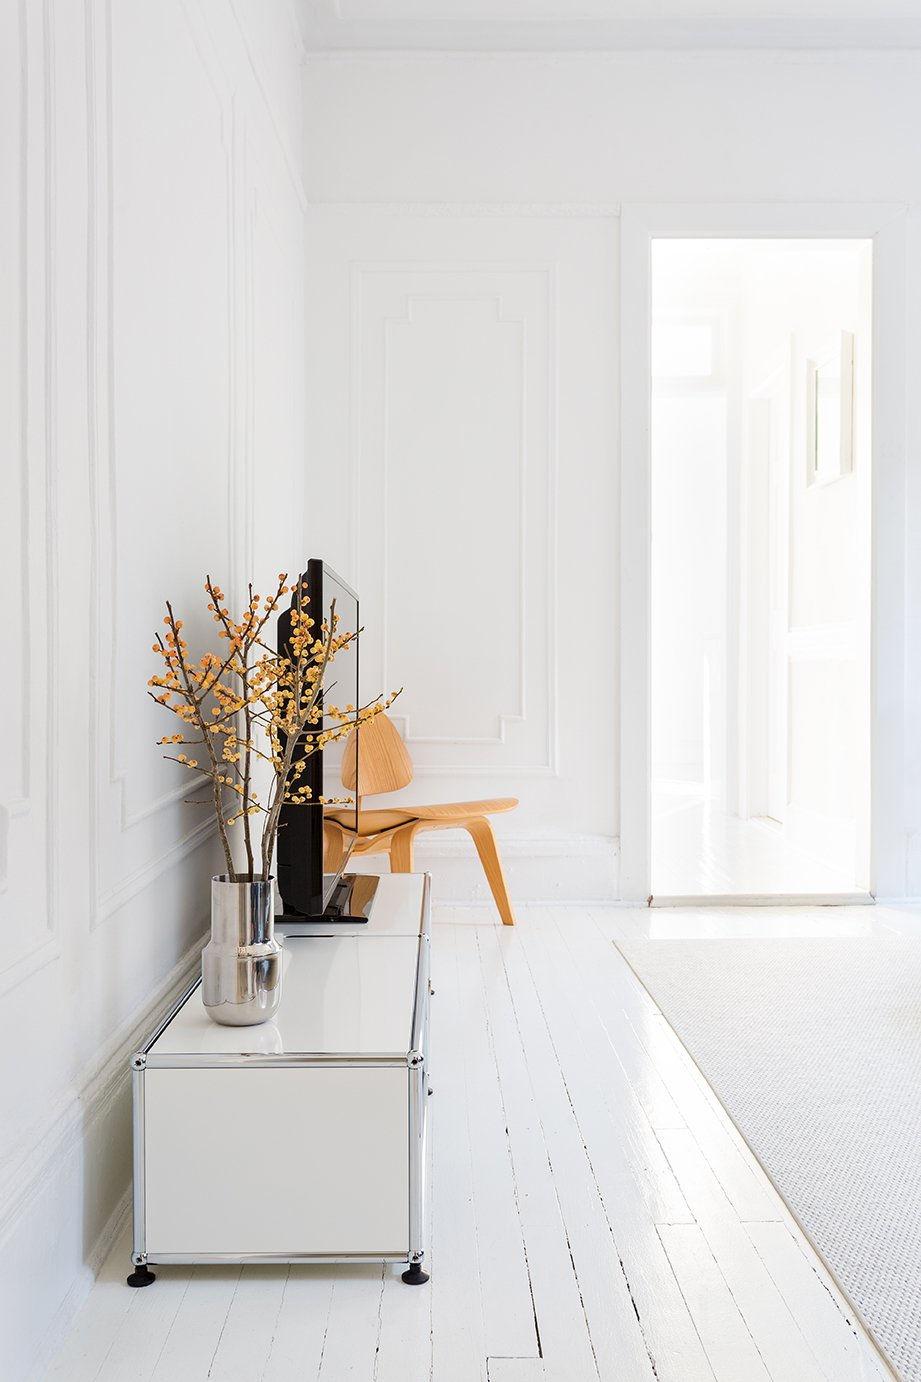 """Living Room, Chair, and Painted Wood Floor """"When everything is painted white, you can really feel the spatial flow and the sectional geometry, which is interesting because it goes from being a rectangle to a square."""" Ed Parker, designer and resident - Brooklyn, New York Dwell Magazine : July / August 2017  Photo 6 of 13 in A Pair of Designers Renovate Their Brooklyn Brownstone With a Bright Monochromatic Palette"""